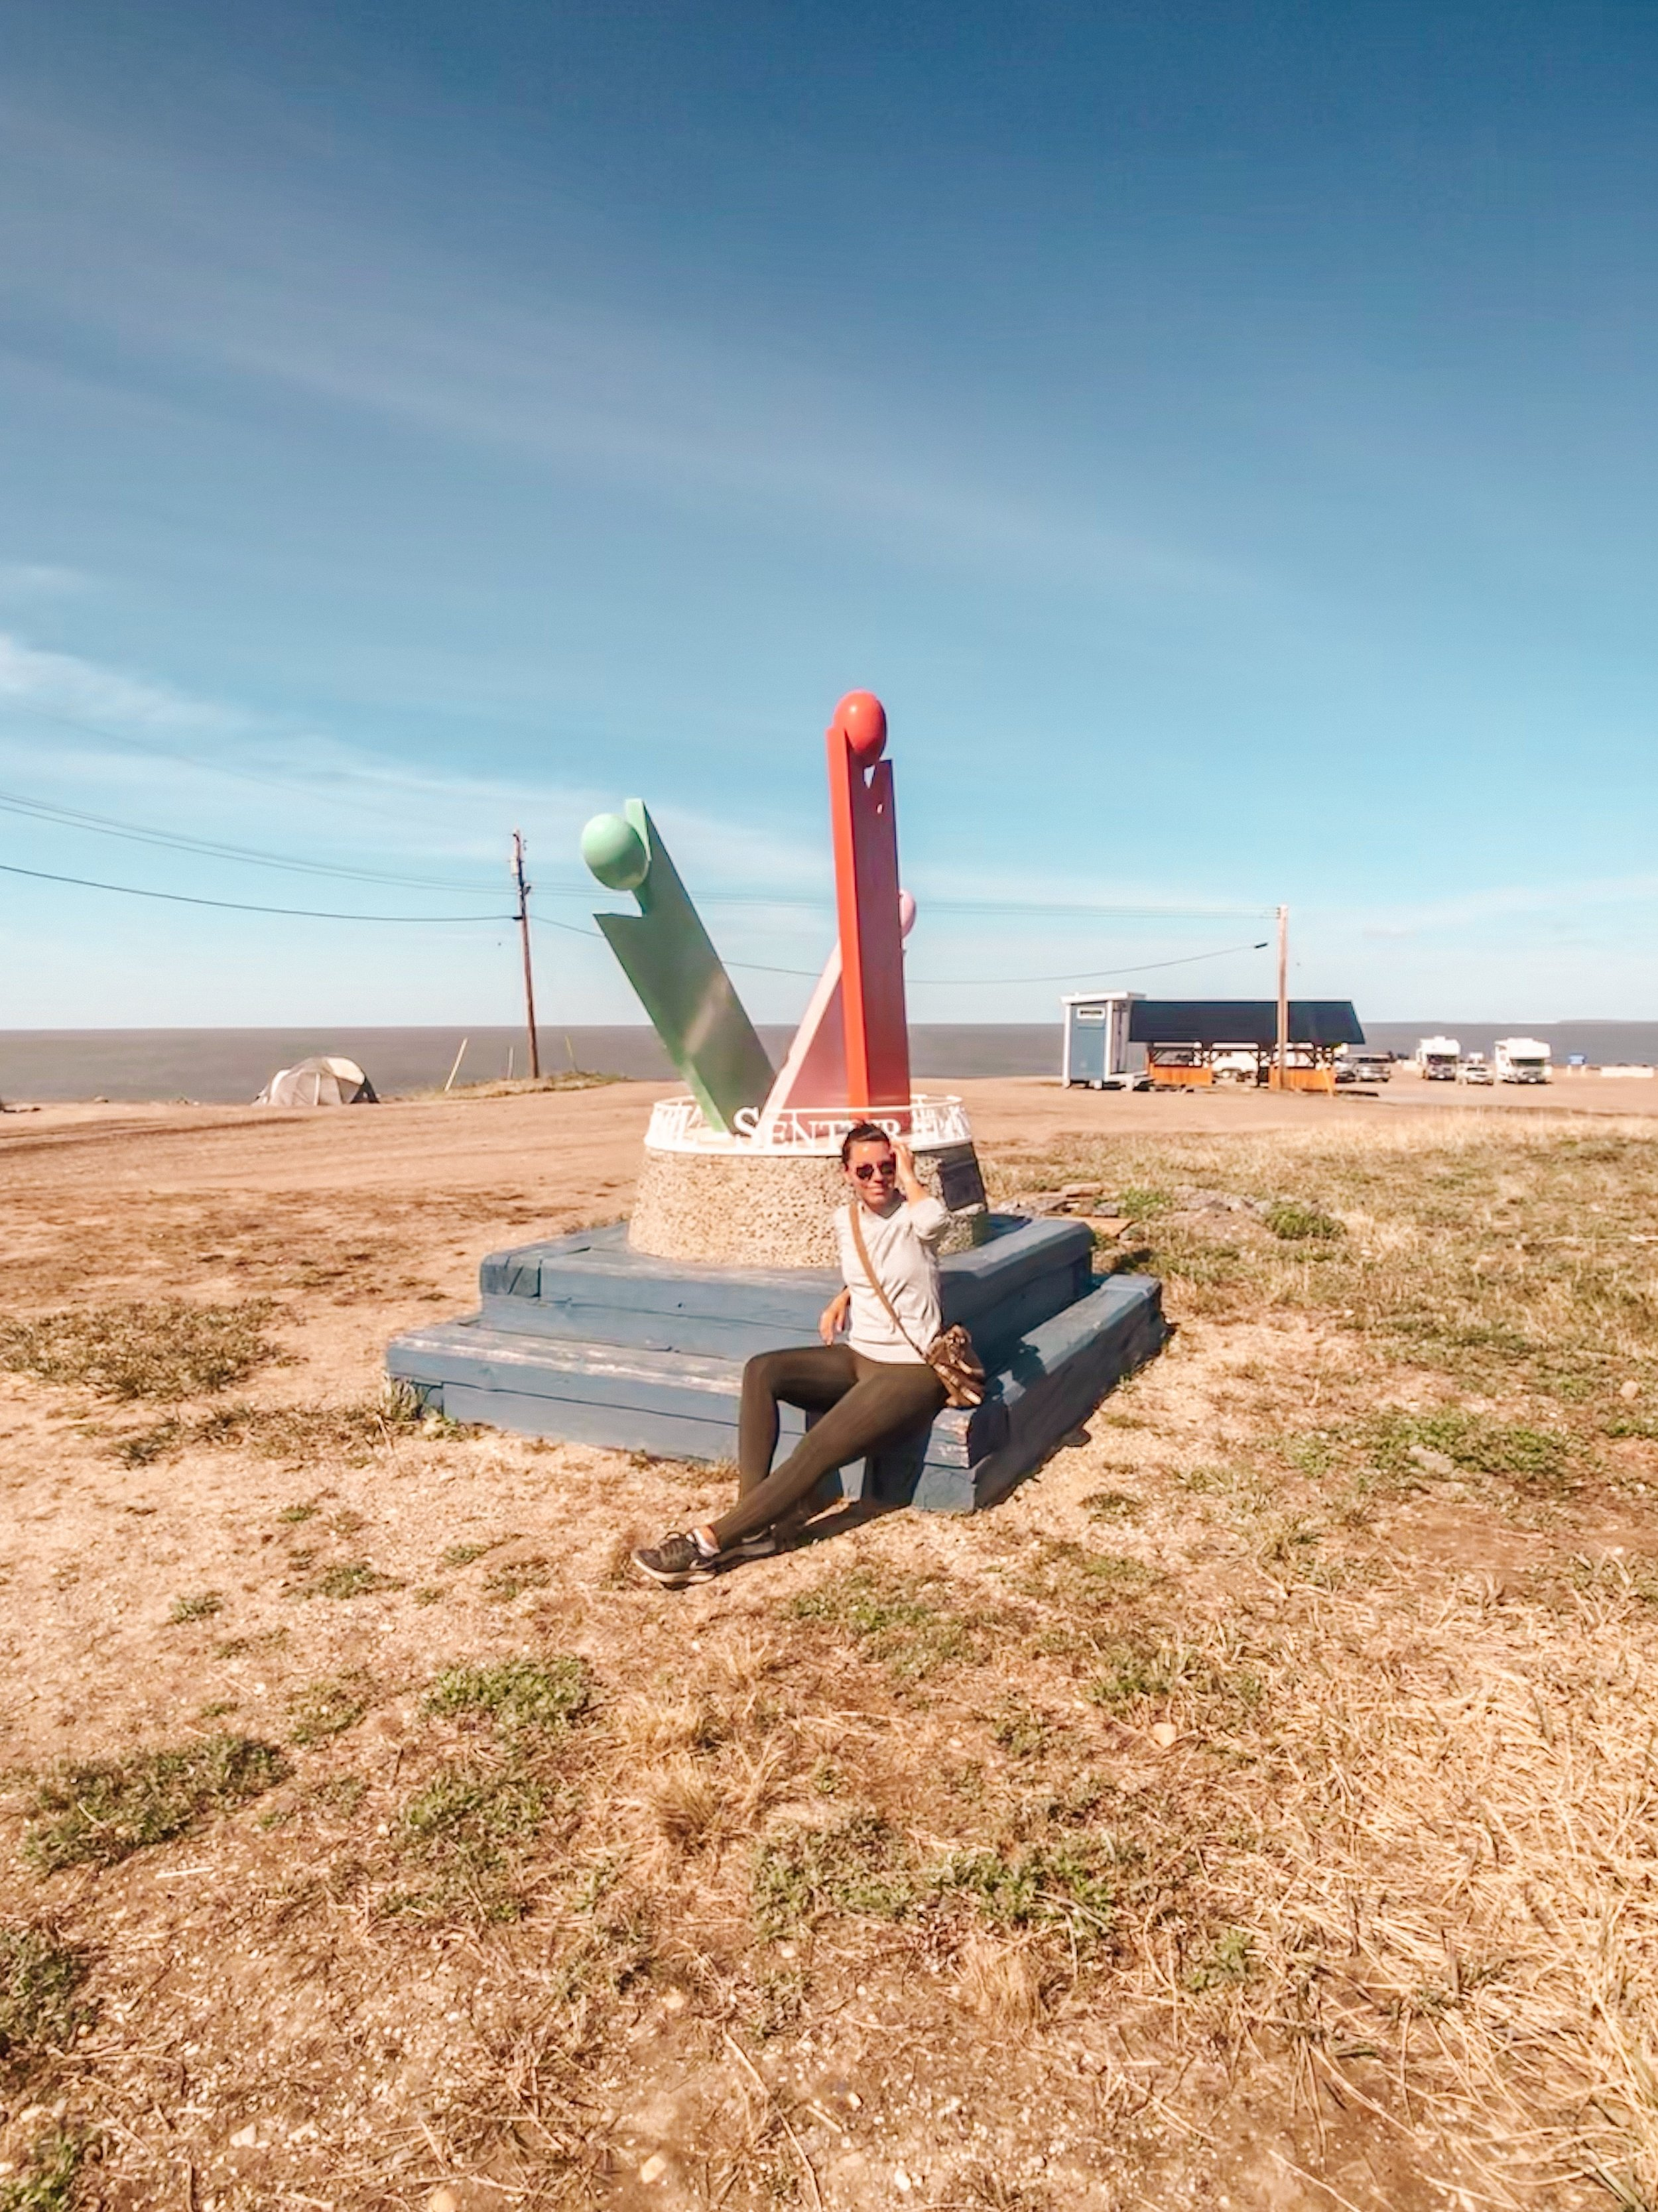 The most northern point in Canada at Tuktoyaktuk Northwest Territories